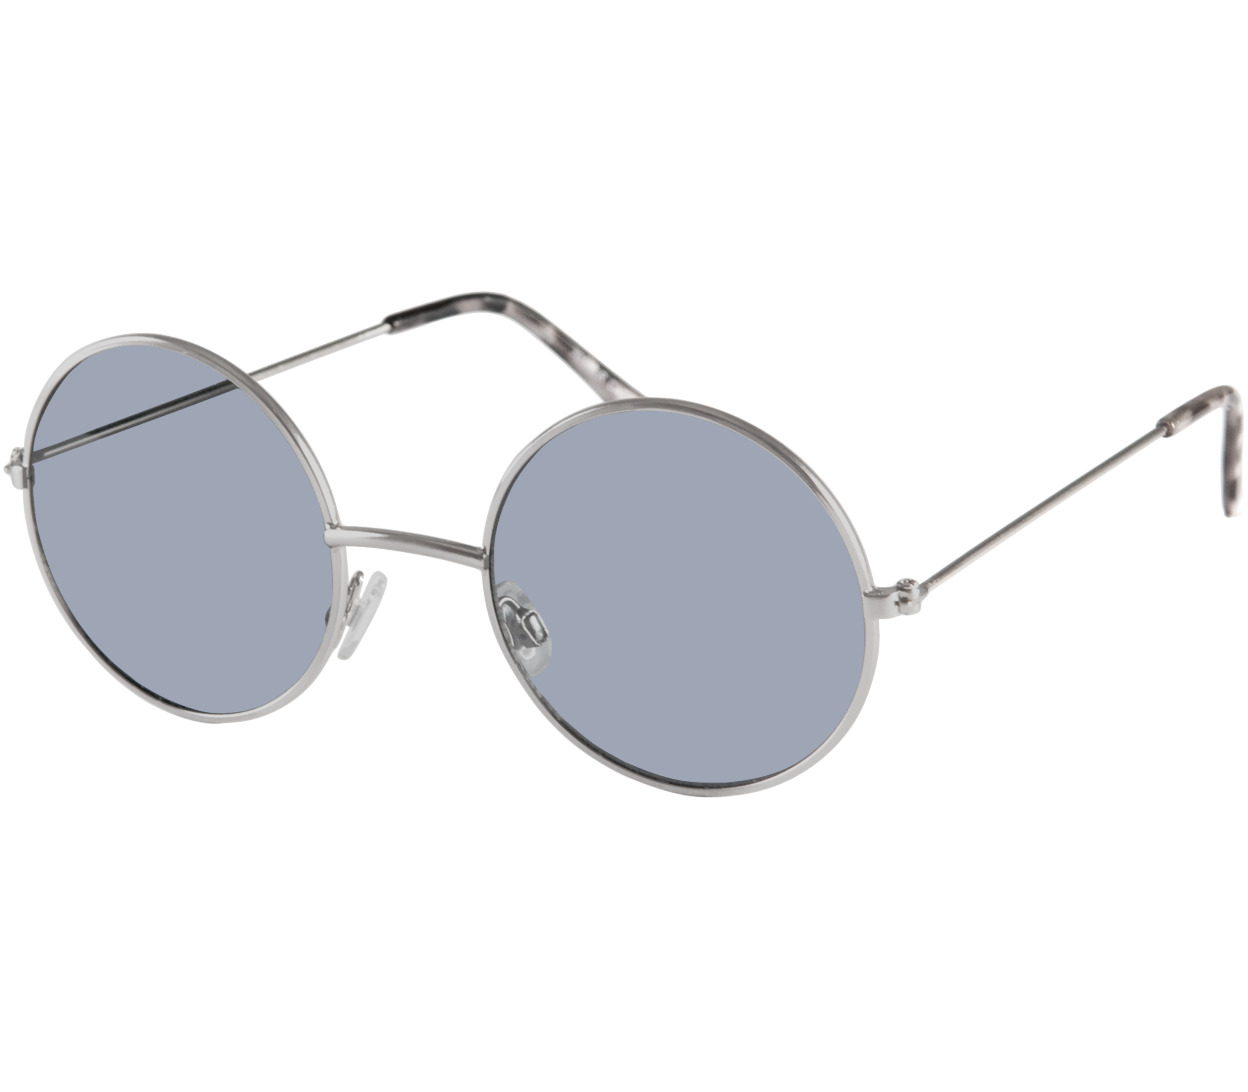 Main Image (Angle) - Maverick (Silver) Retro Sunglasses